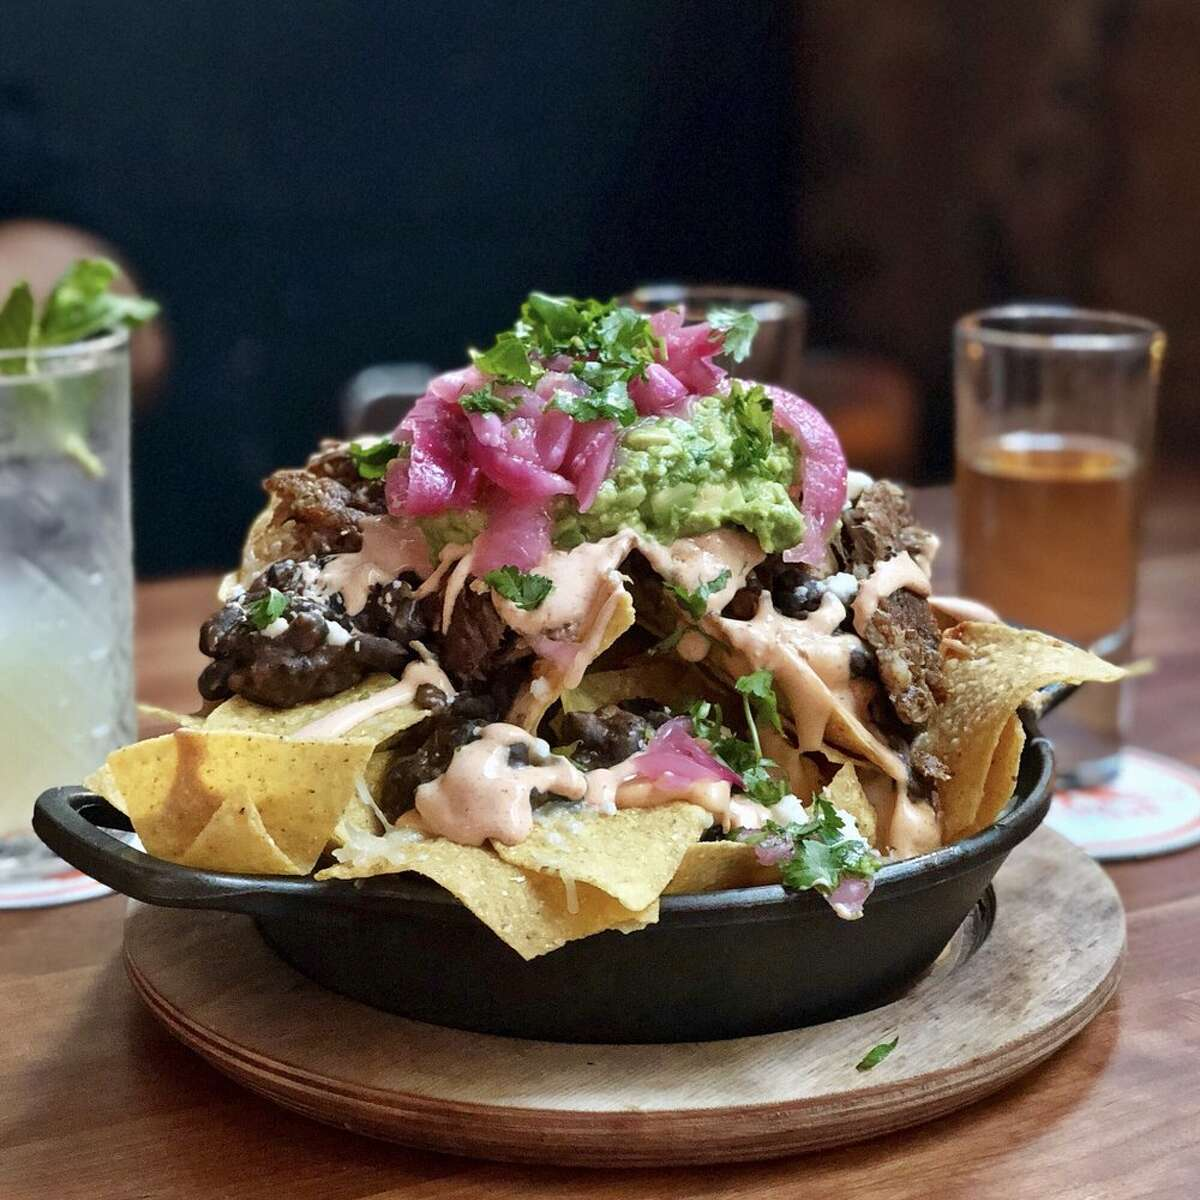 For a hefty tower of nachos, swing by Cantina LenaTom Douglas' Belltown eatery doling out Mexican fare is here for all the nacho fixings. Pull tortilla chips from gargantuan plates of cantina nachos like a game of Jenga, drenched in toppings like crispy pork carnitas, green chiles with guac, tapatio sour cream, and pickled onion. Or for some vegan grub, nab their nachos coated with cashew-squash cheese, house-made tofu chorizo, escabeche, and cashew sour cream.